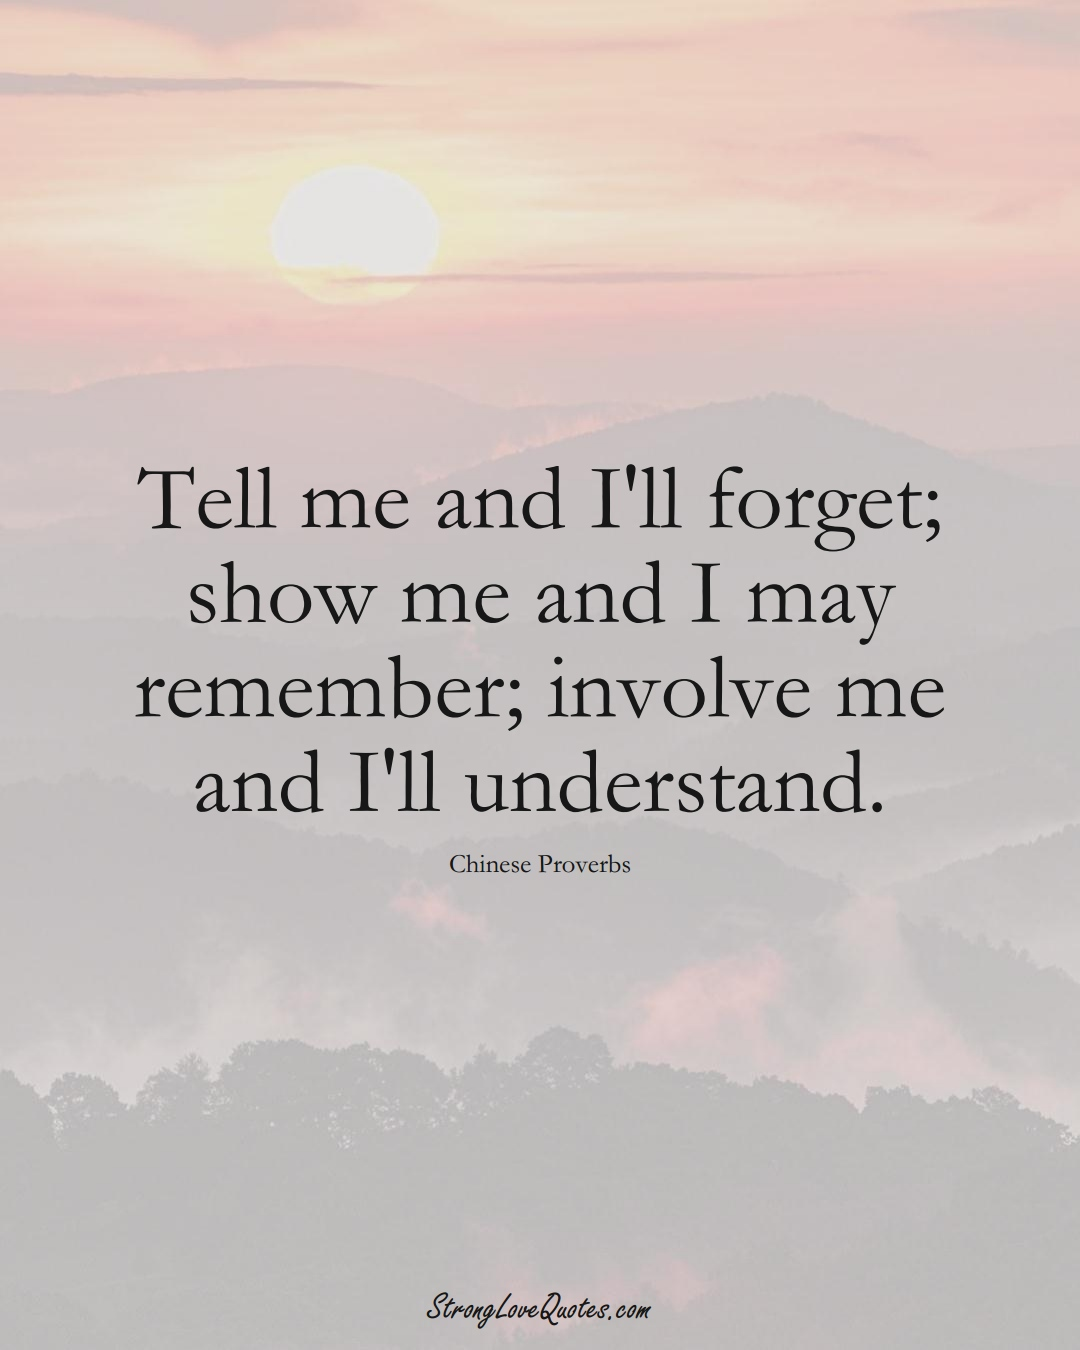 Tell me and I'll forget; show me and I may remember; involve me and I'll understand. (Chinese Sayings);  #AsianSayings